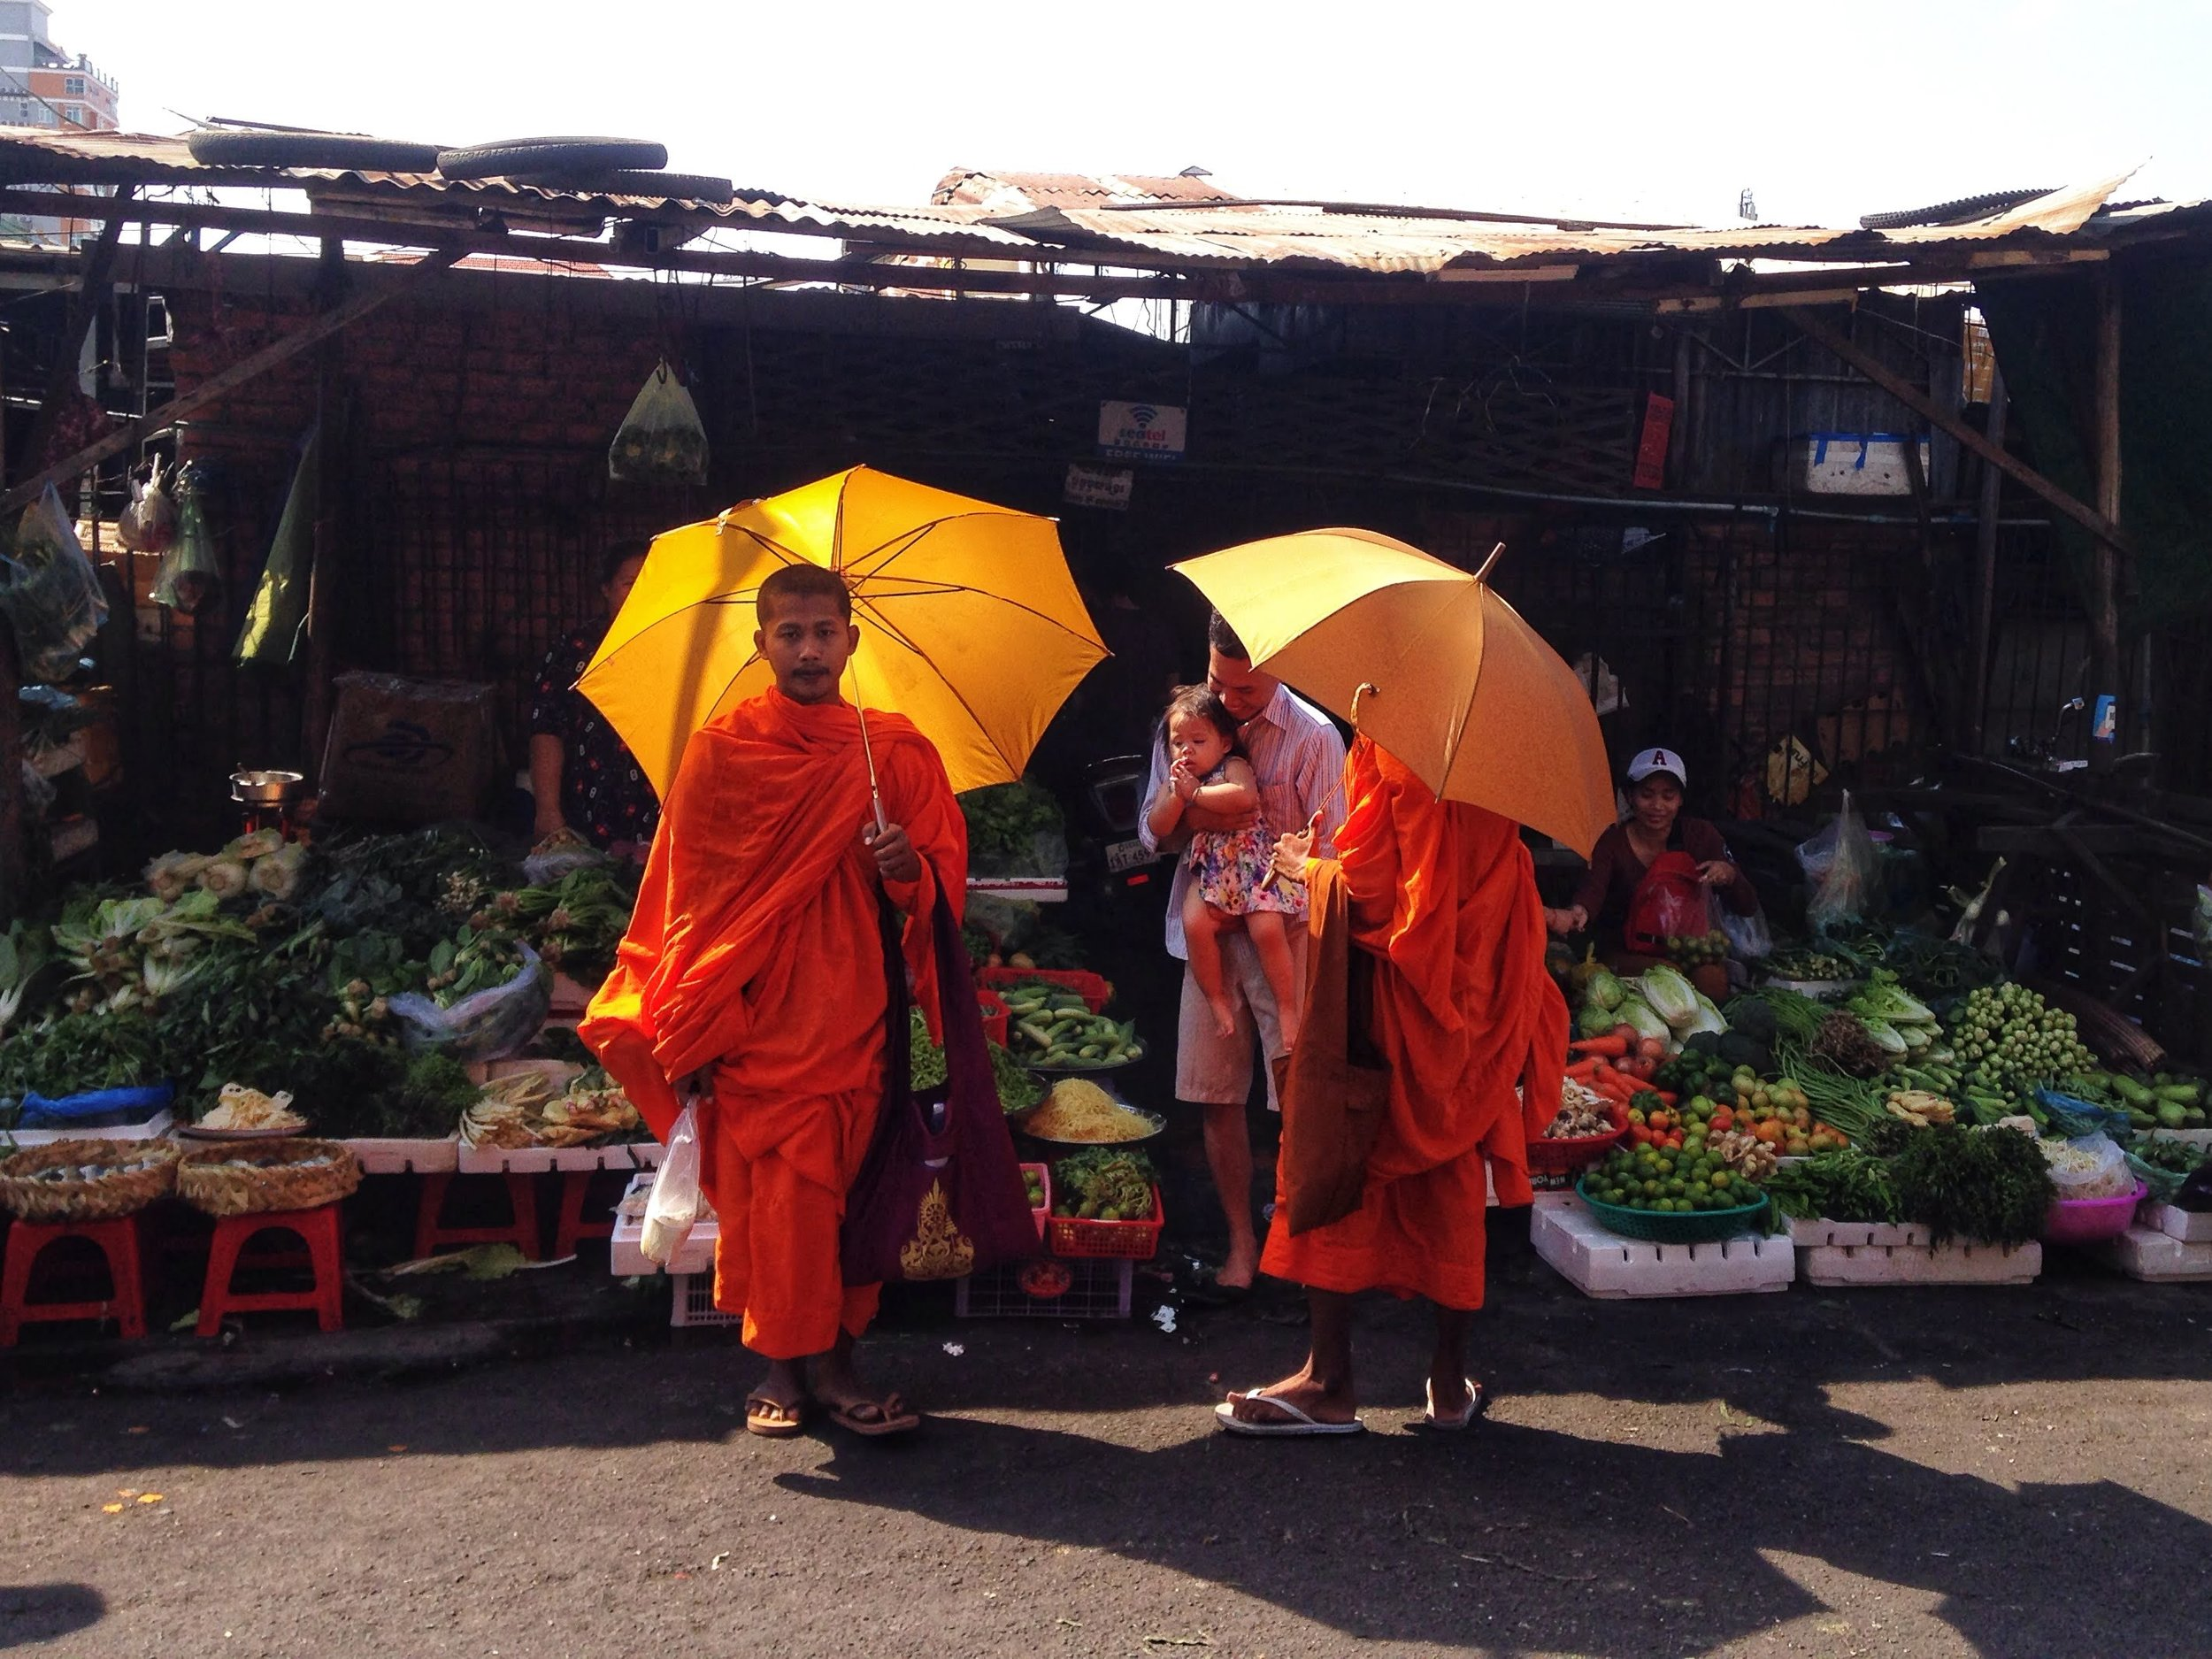 Buddhist monks collecting alms at the Russian Market in Phnom Penh